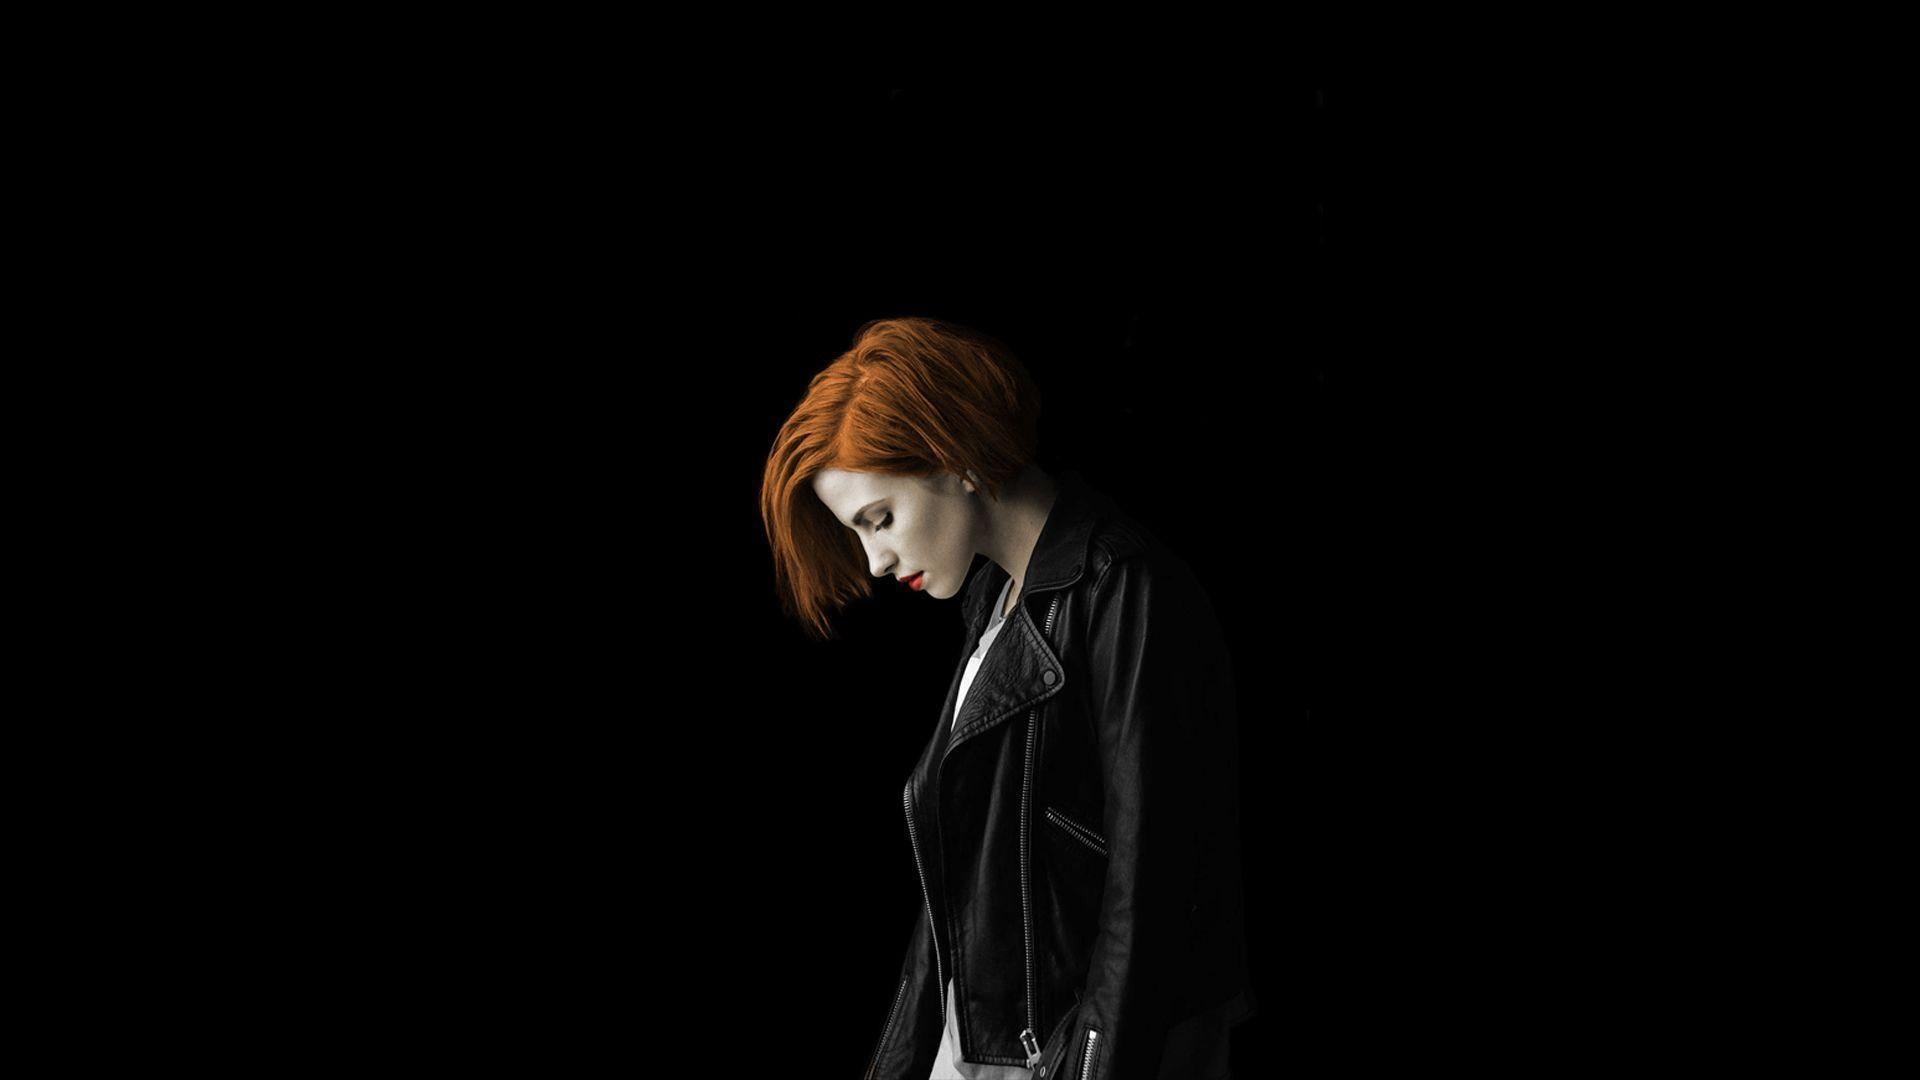 Hayley Williams Wallpapers 2016 - Wallpaper Cave